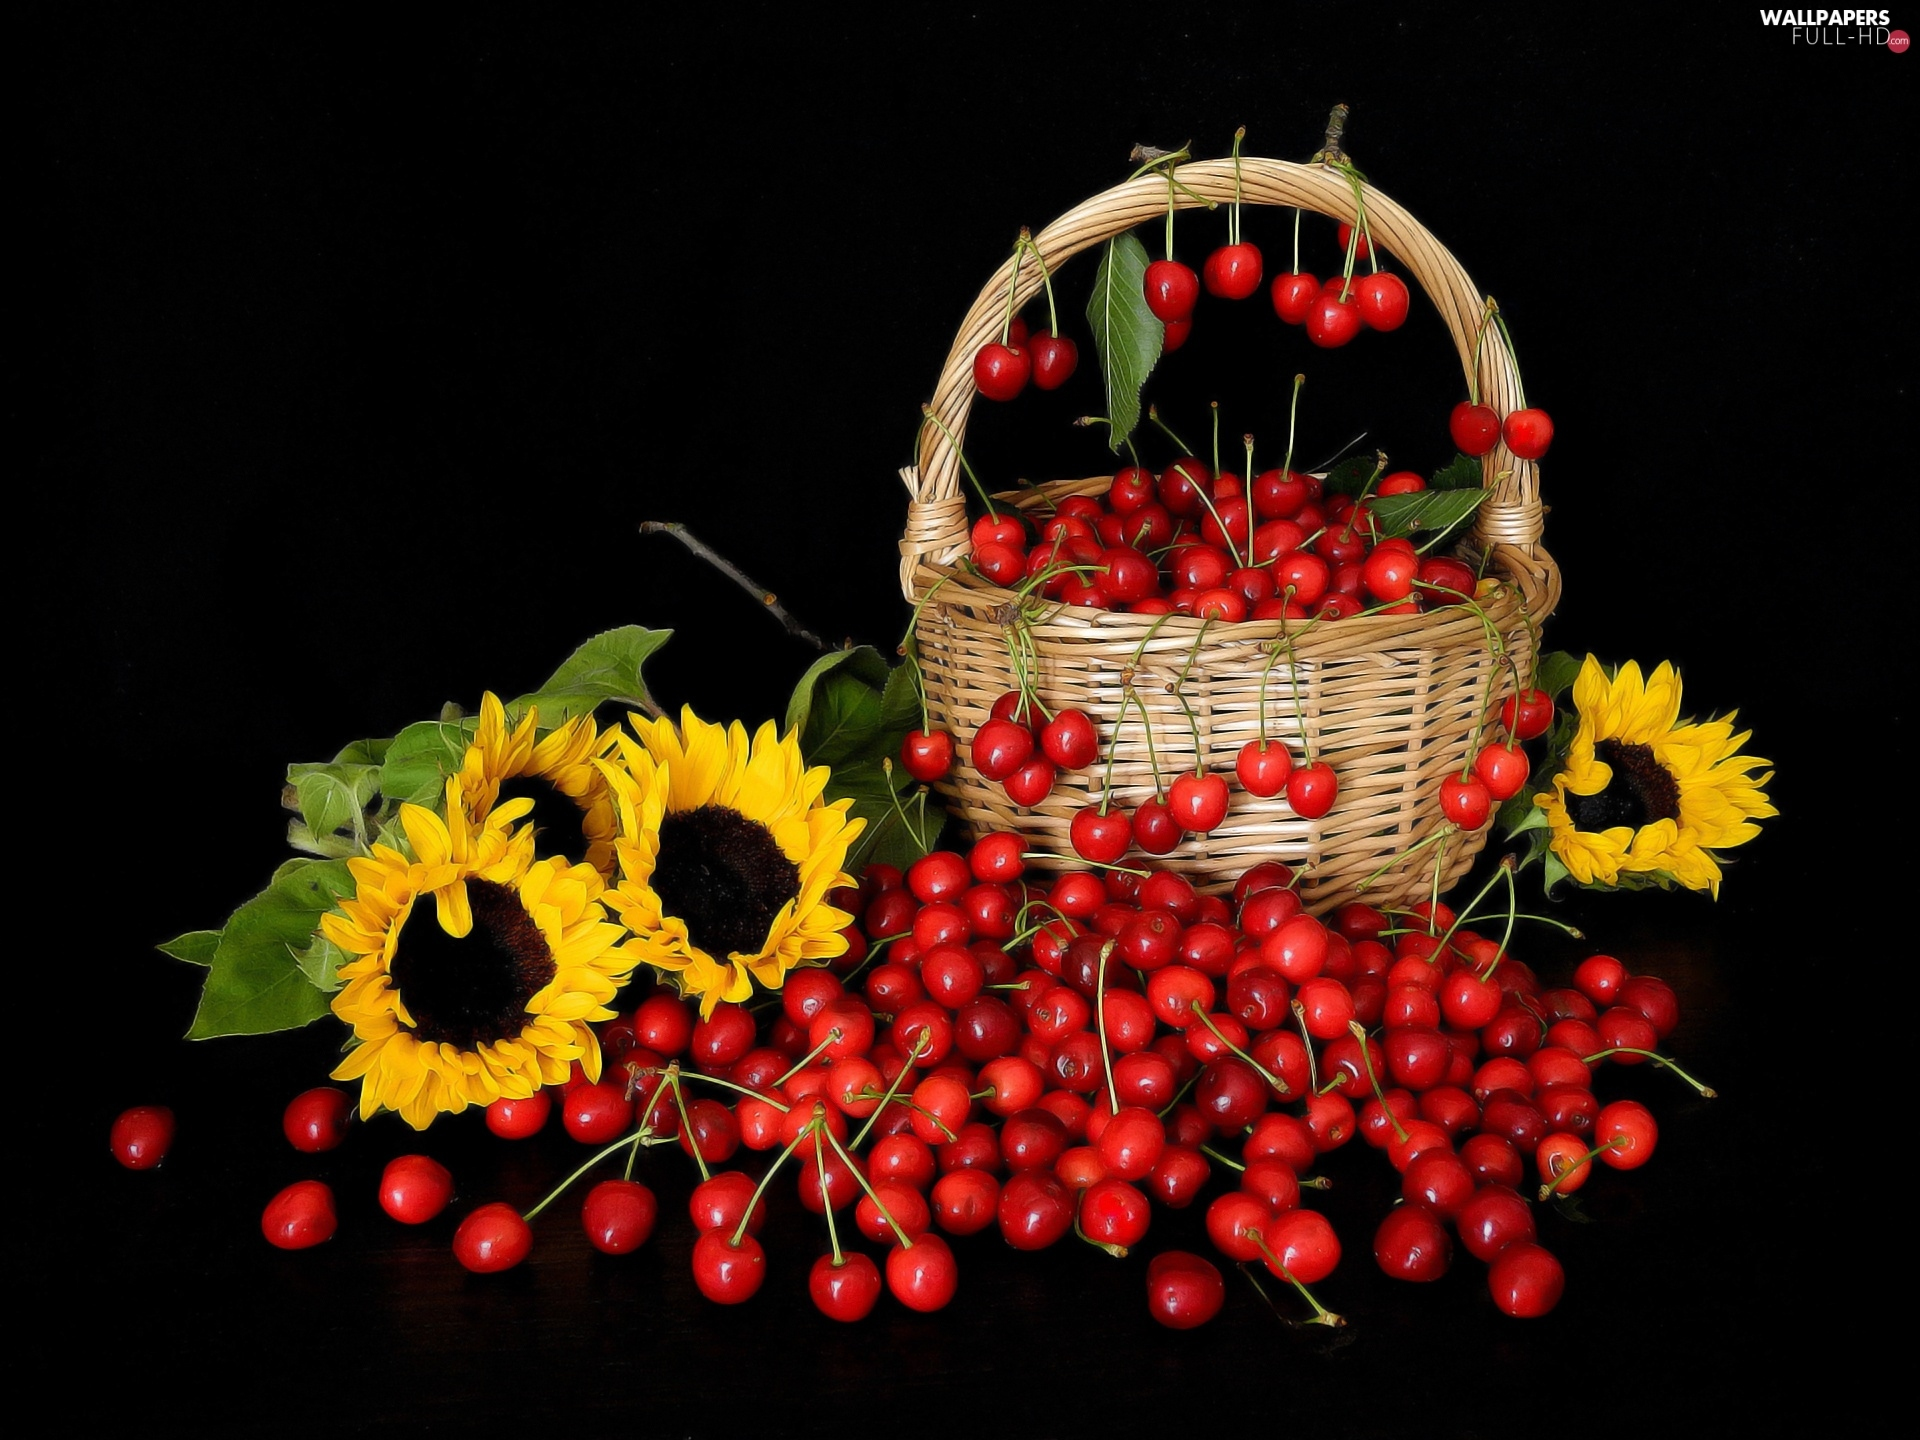 compositions, basket, Nice sunflowers, cherries